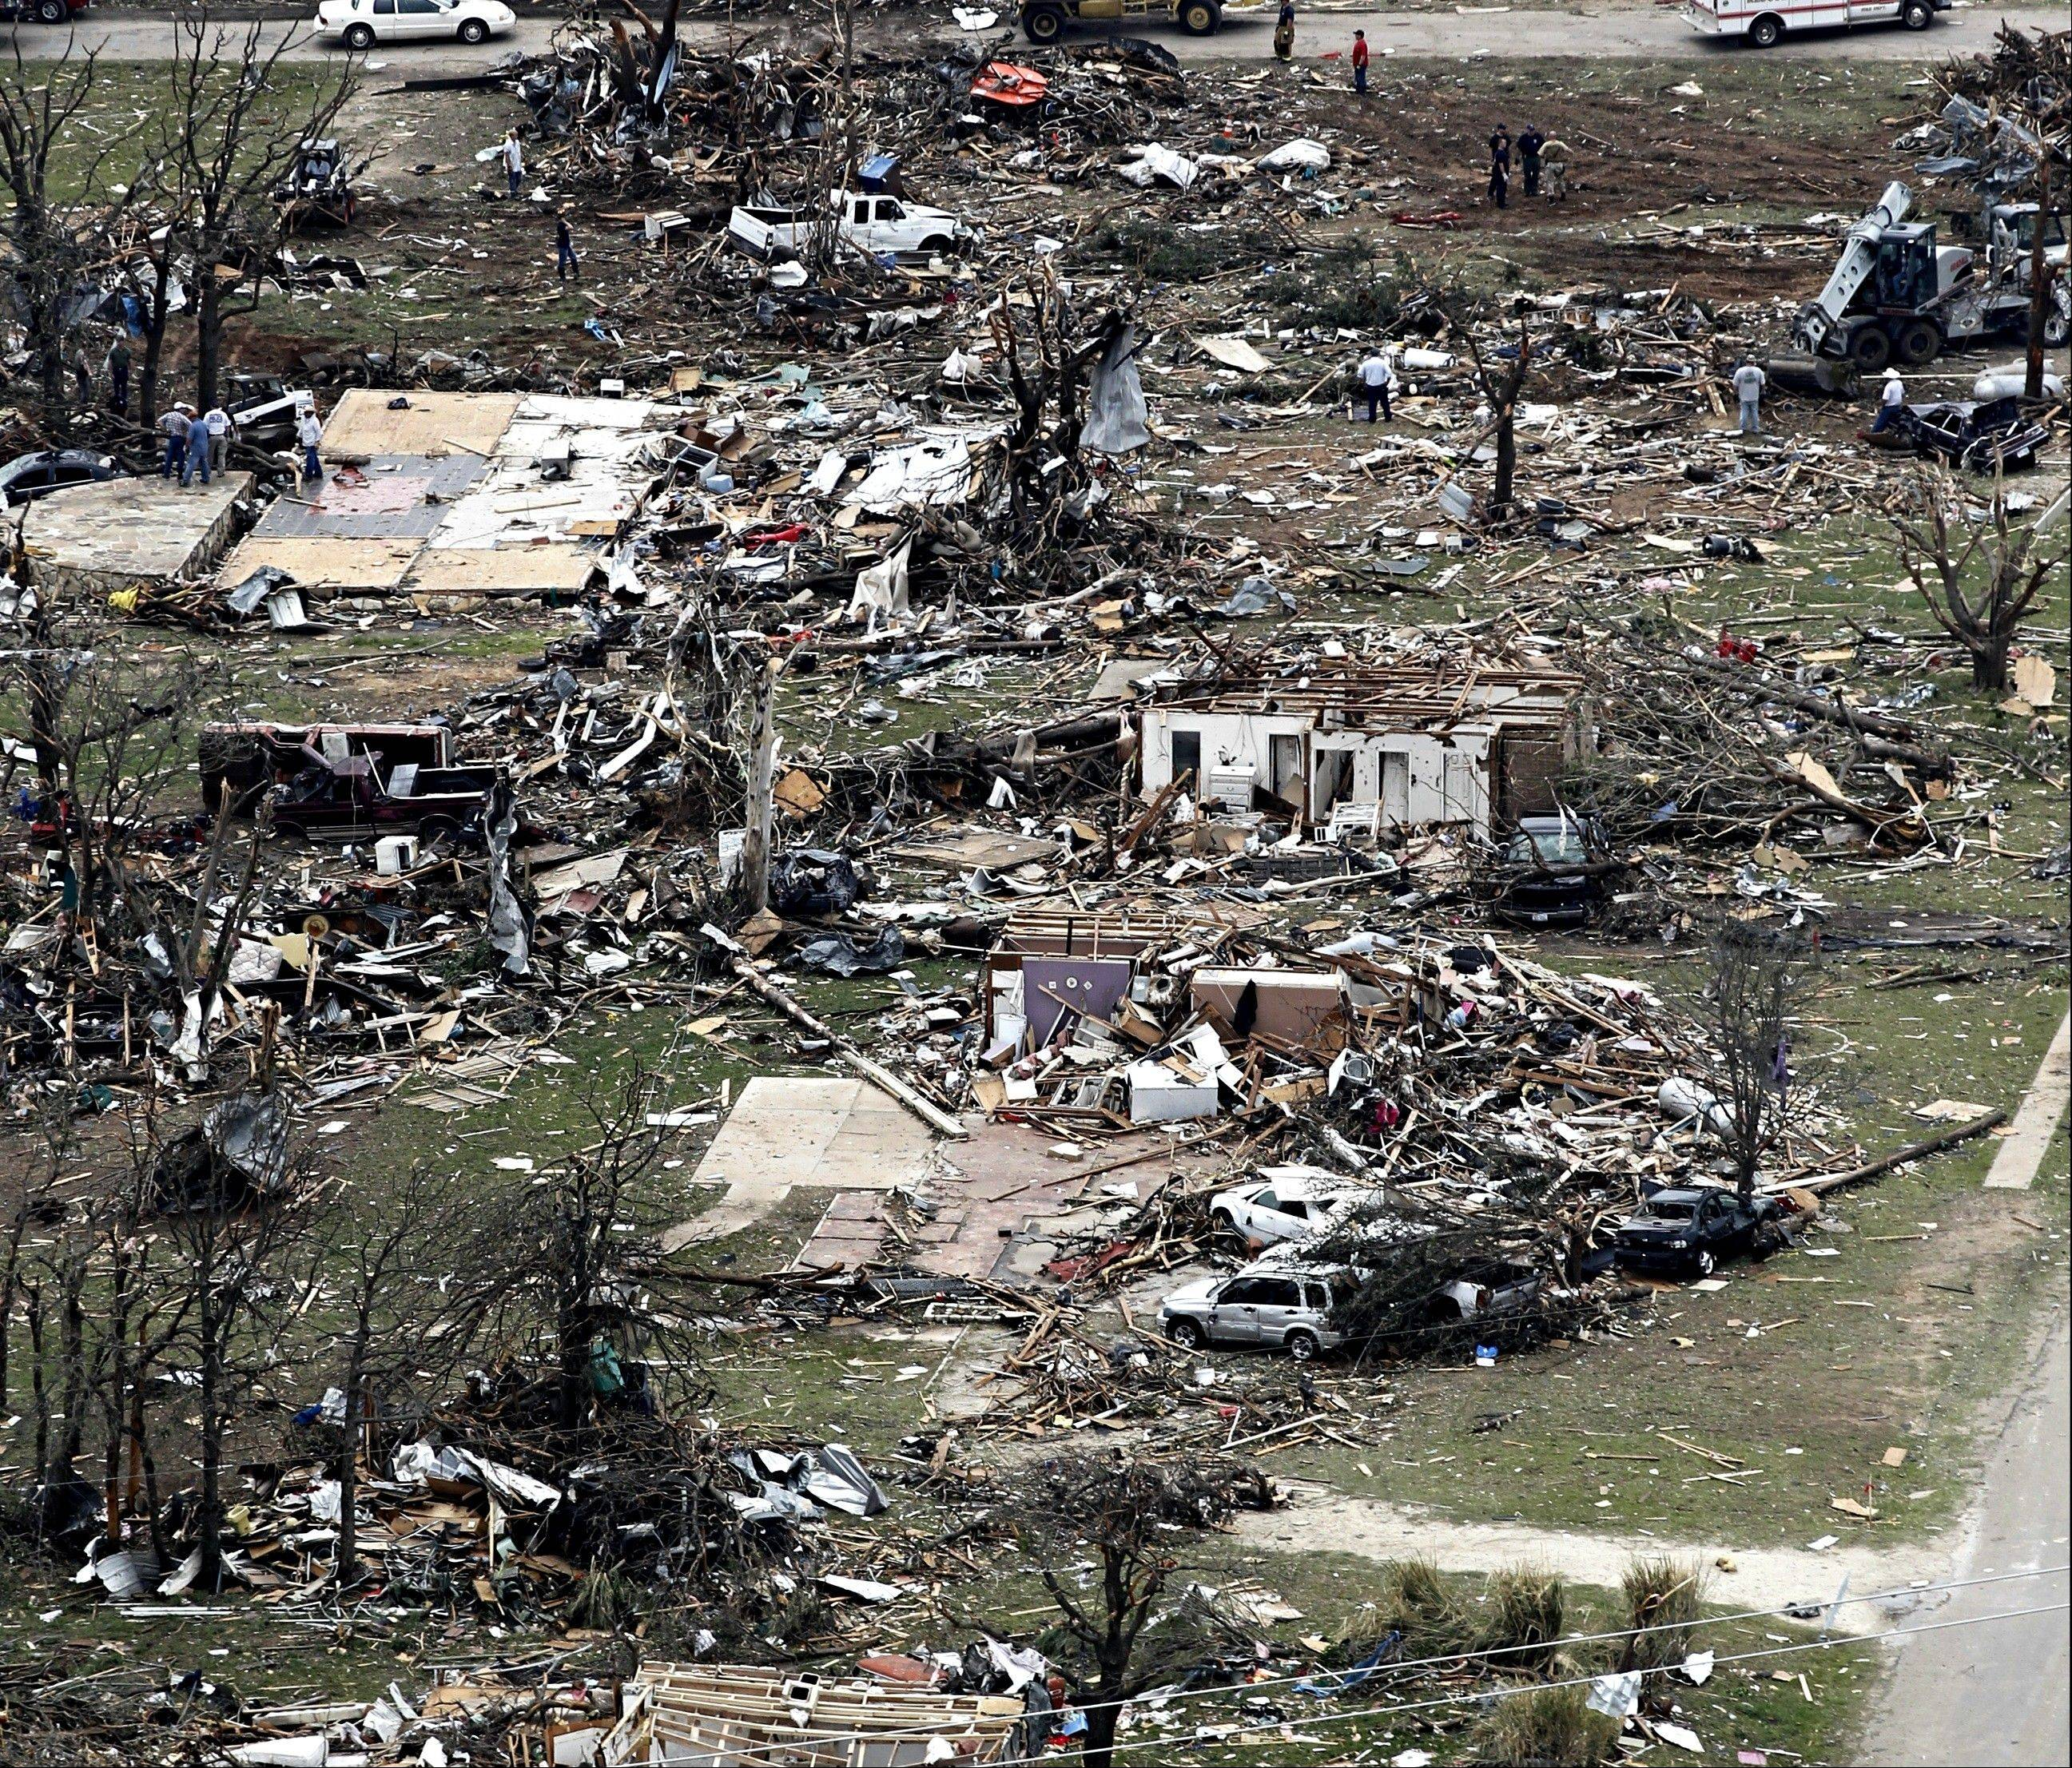 Homes are heavily damaged in this aerial view of Granbury, Texas on Thursday, May 16, 2013, after multiple tornadoes hit the area Wednesday night. Ten tornadoes touched down in several small communities in North Texas overnight, leaving at least six people dead, dozens injured and hundreds homeless. Emergency responders were still searching for missing people Thursday afternoon.